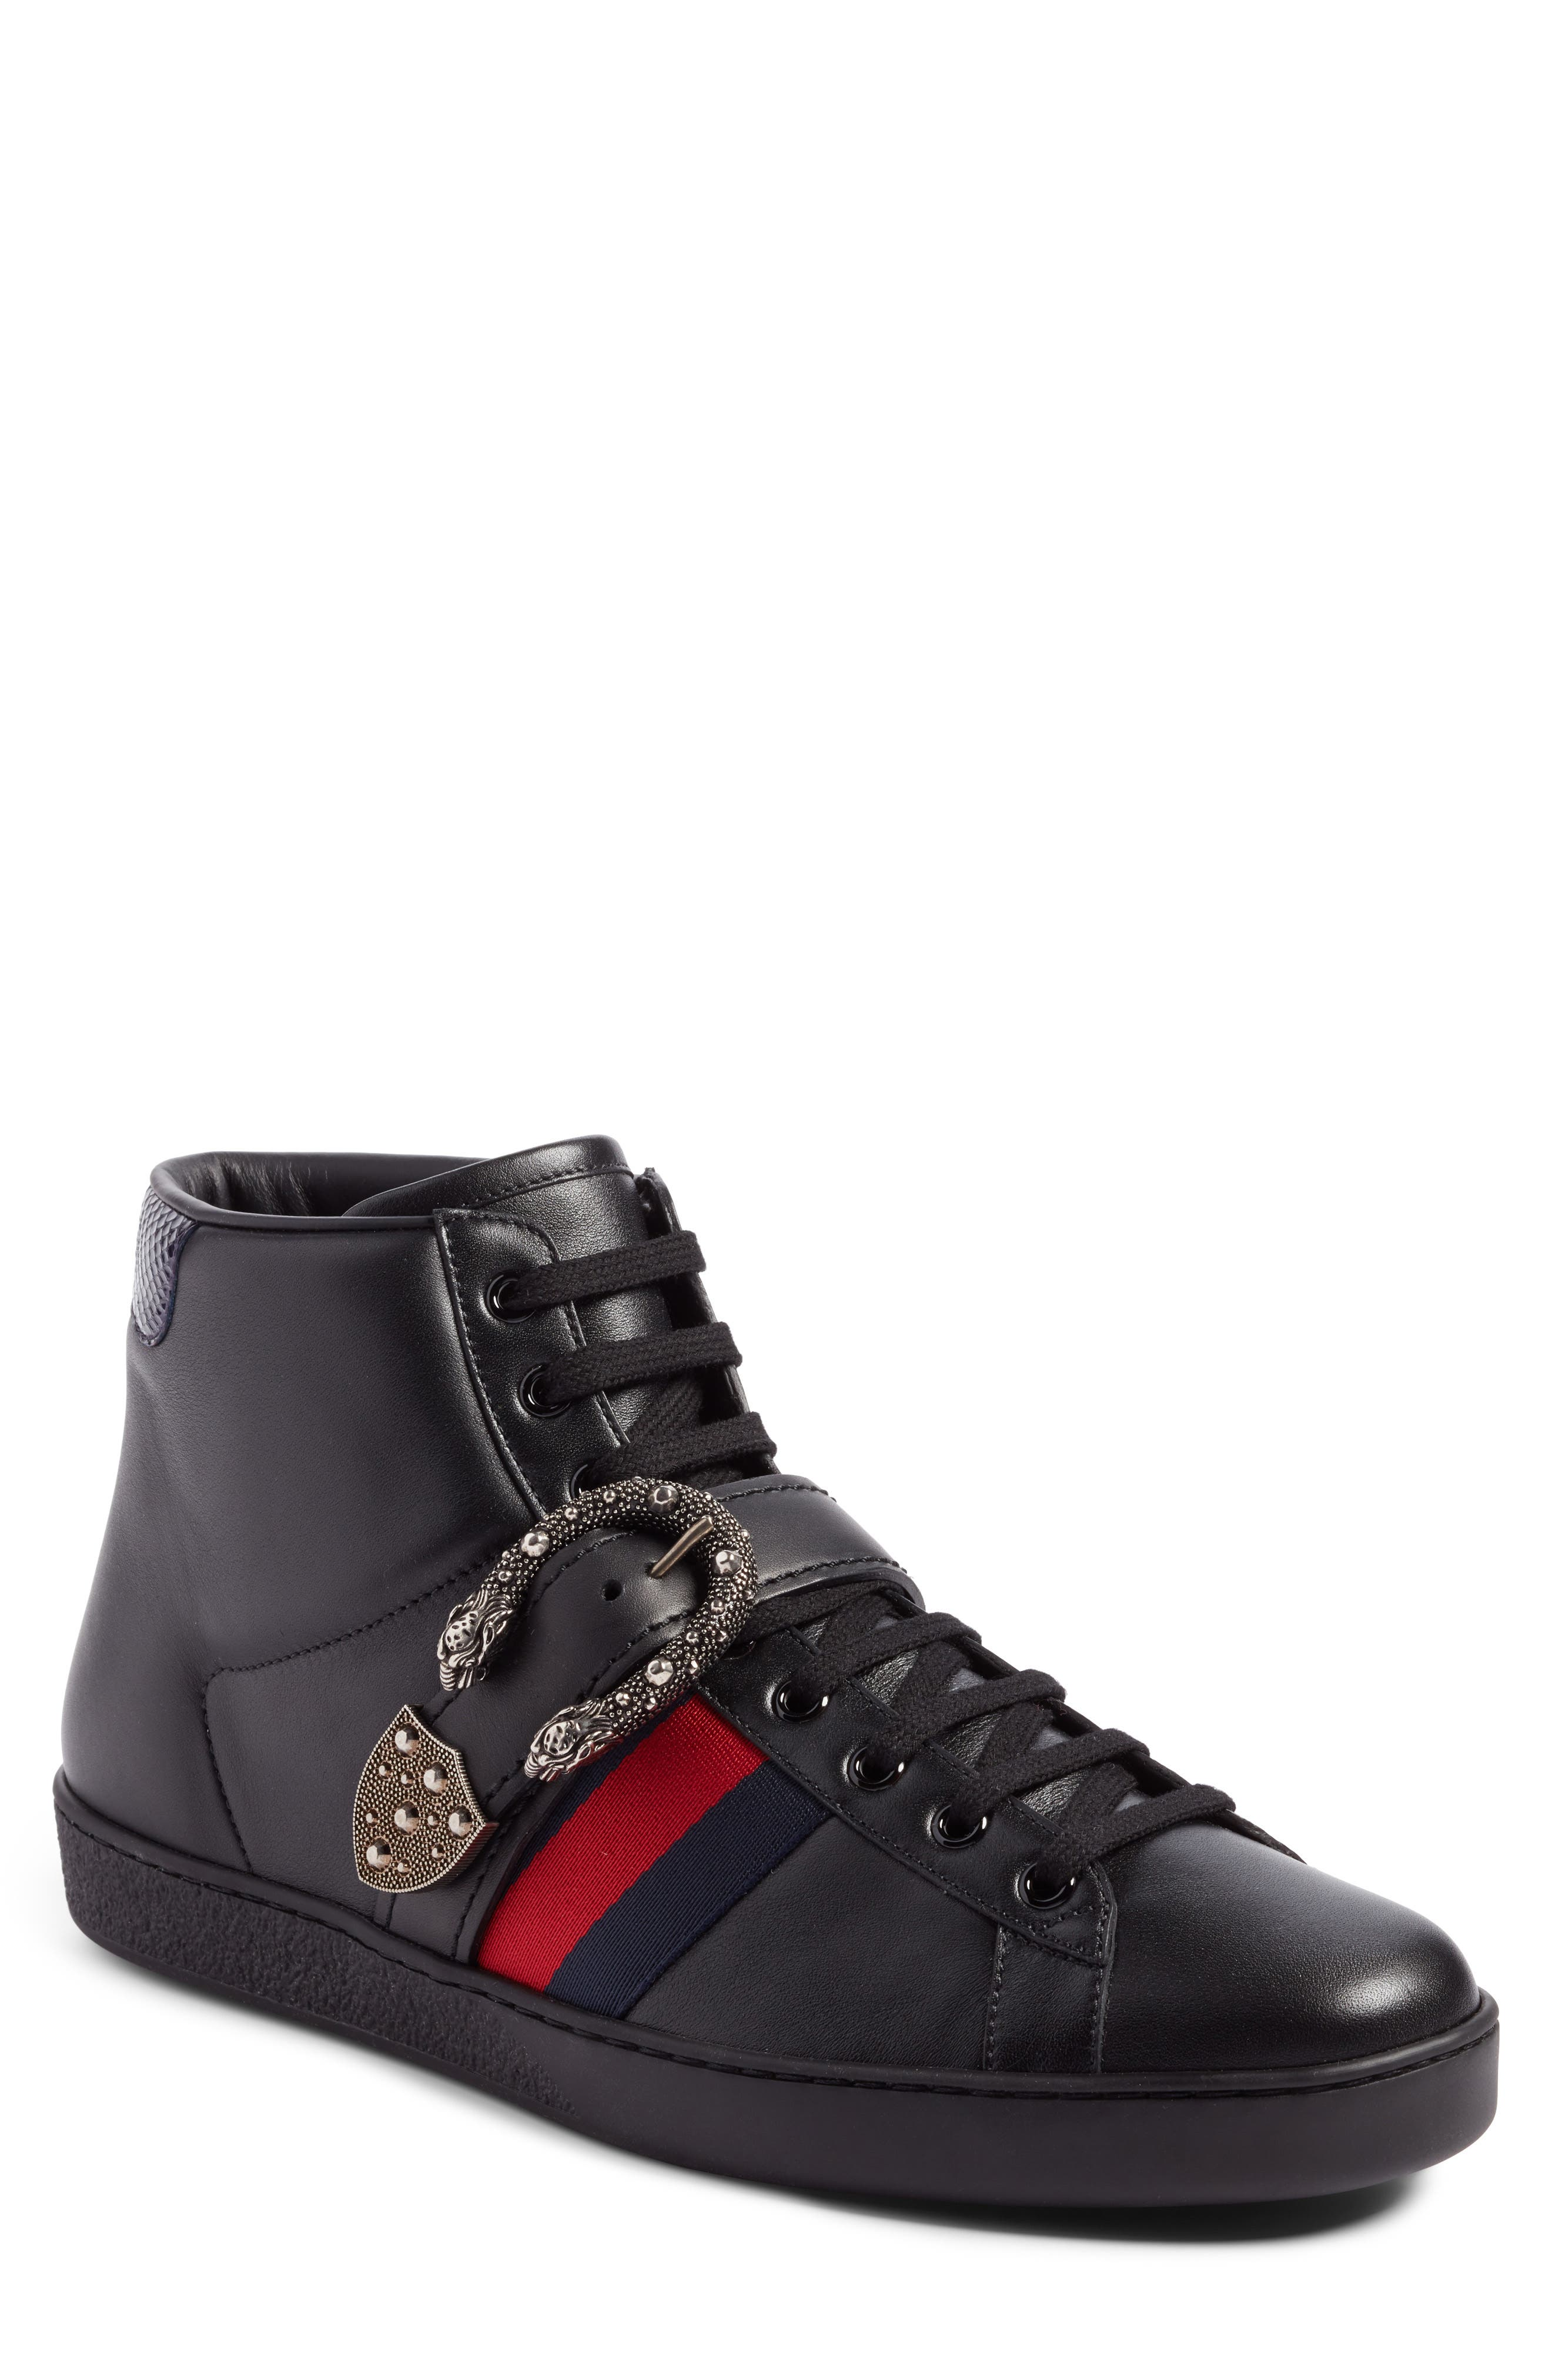 Gucci New Ace Dionysus Buckle High Top Sneaker (Men)